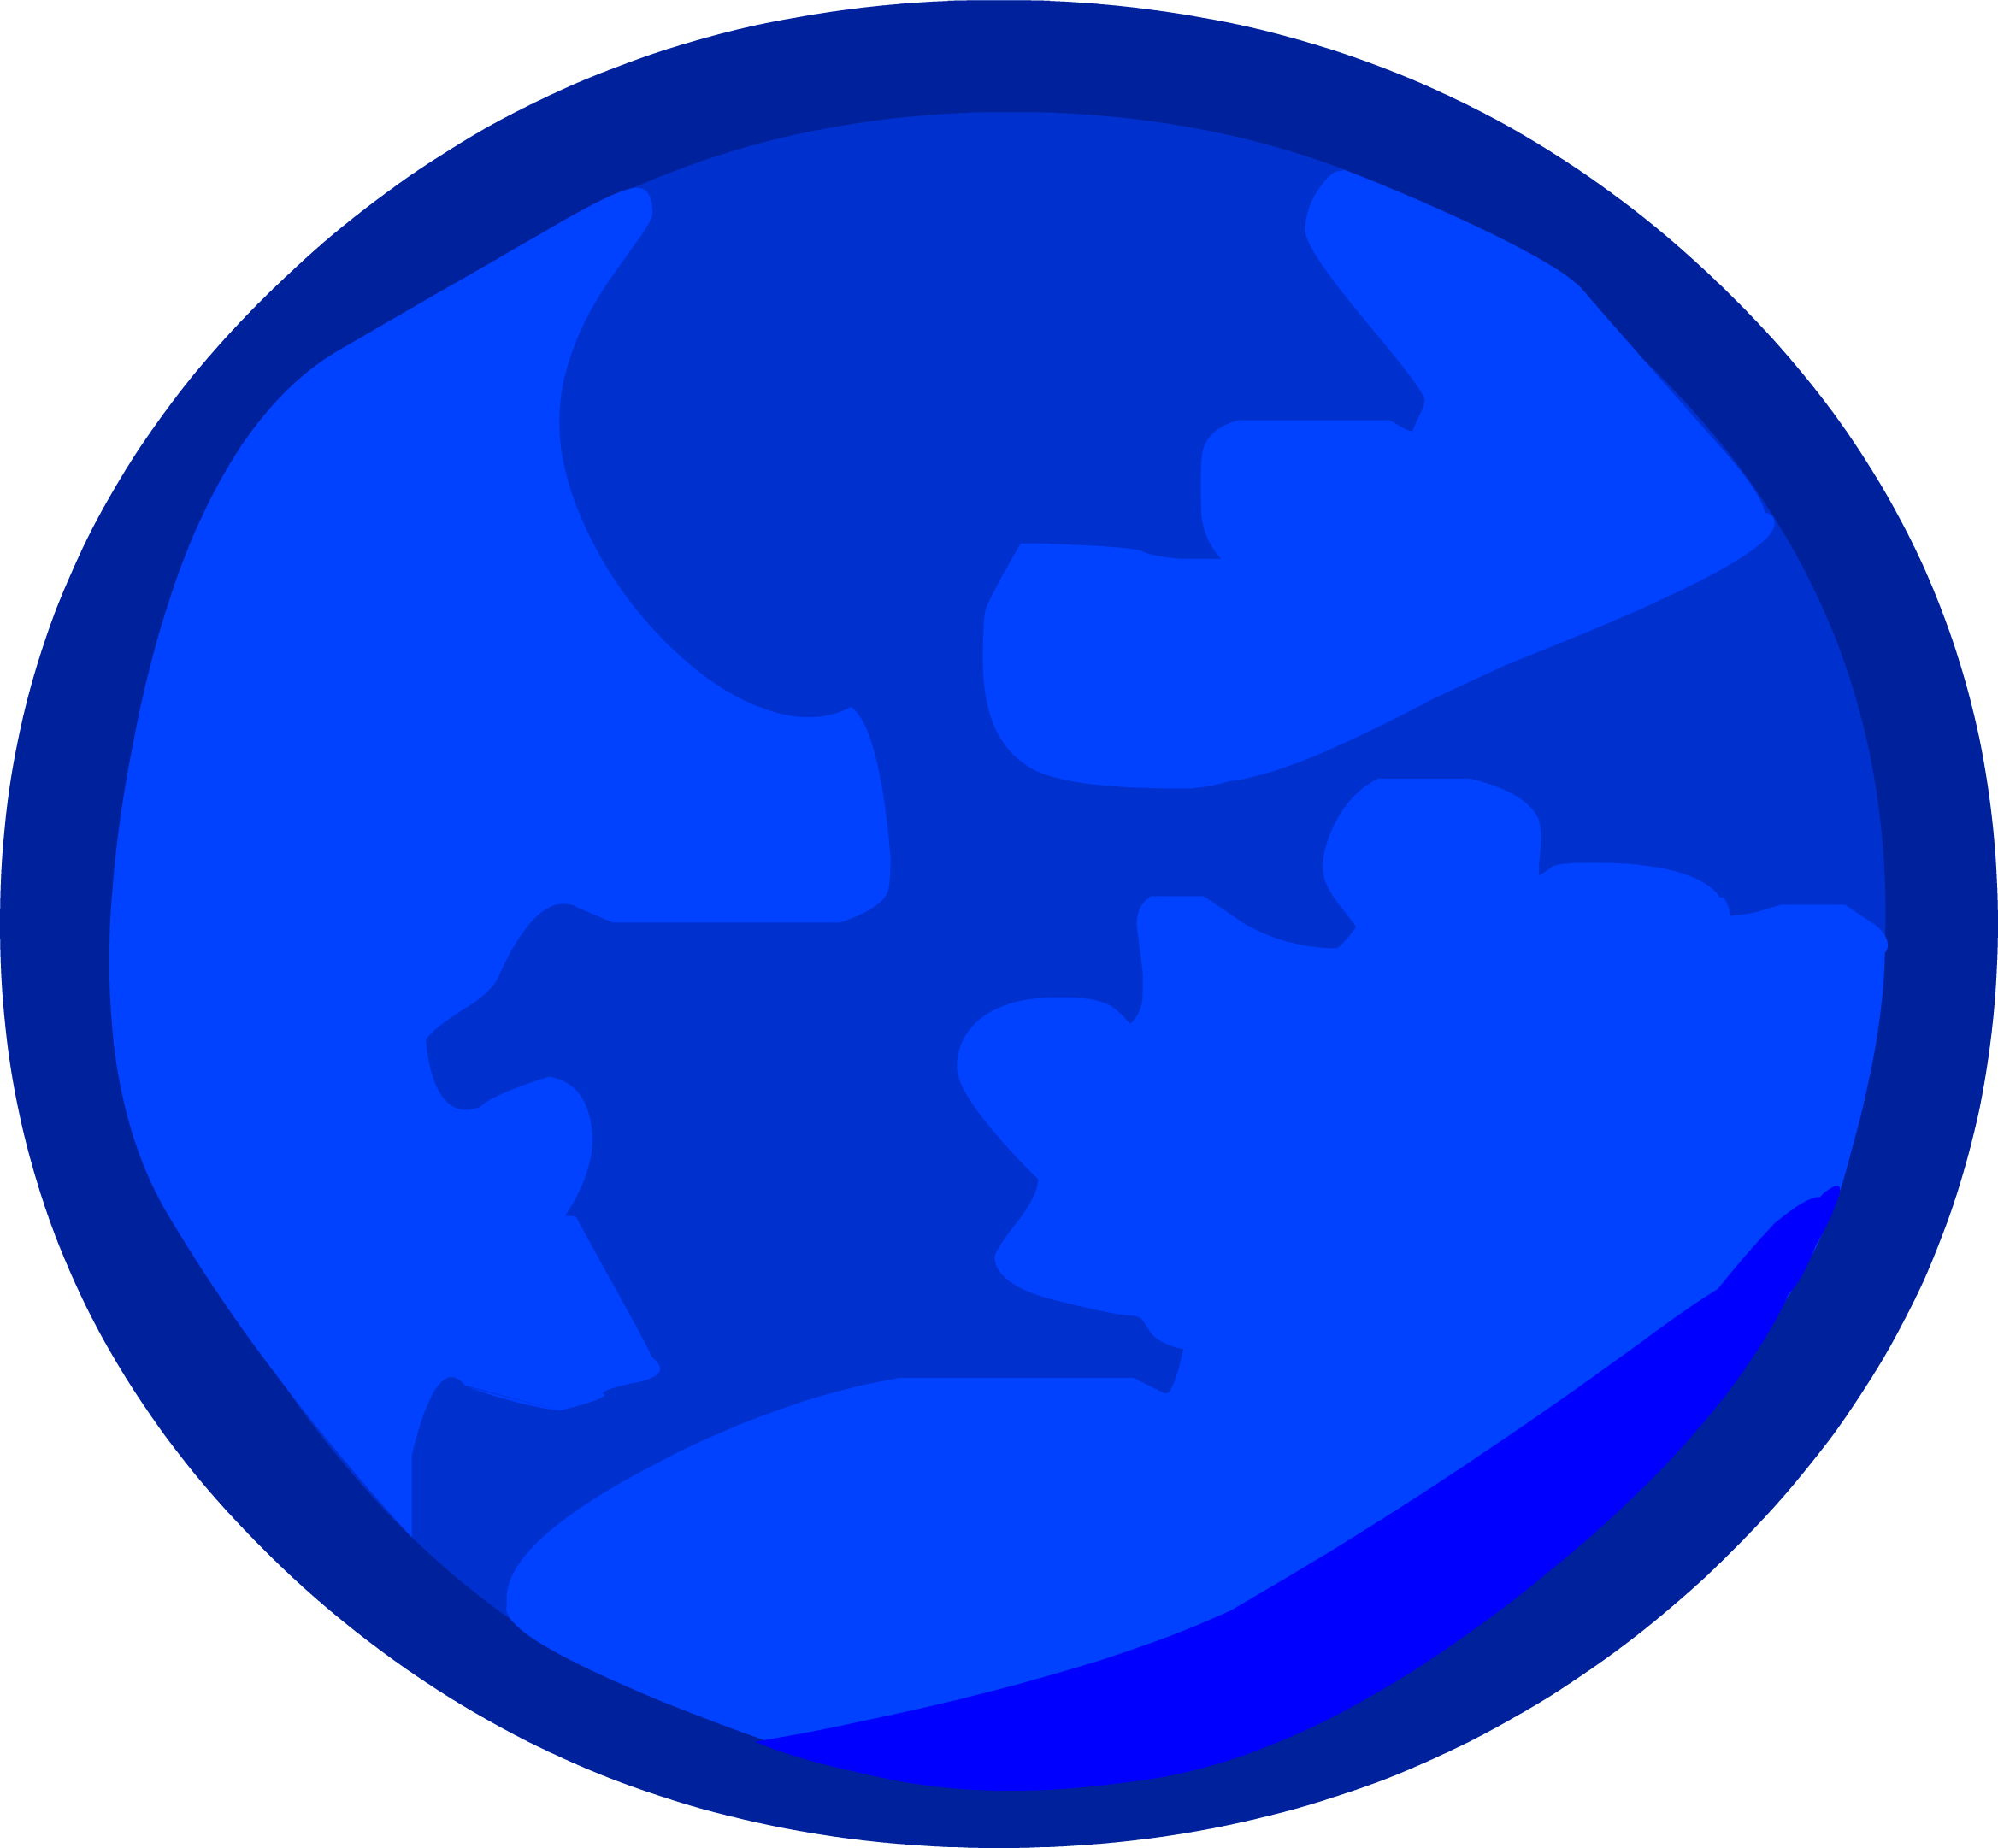 Image body png challenge. Planet clipart blue planet